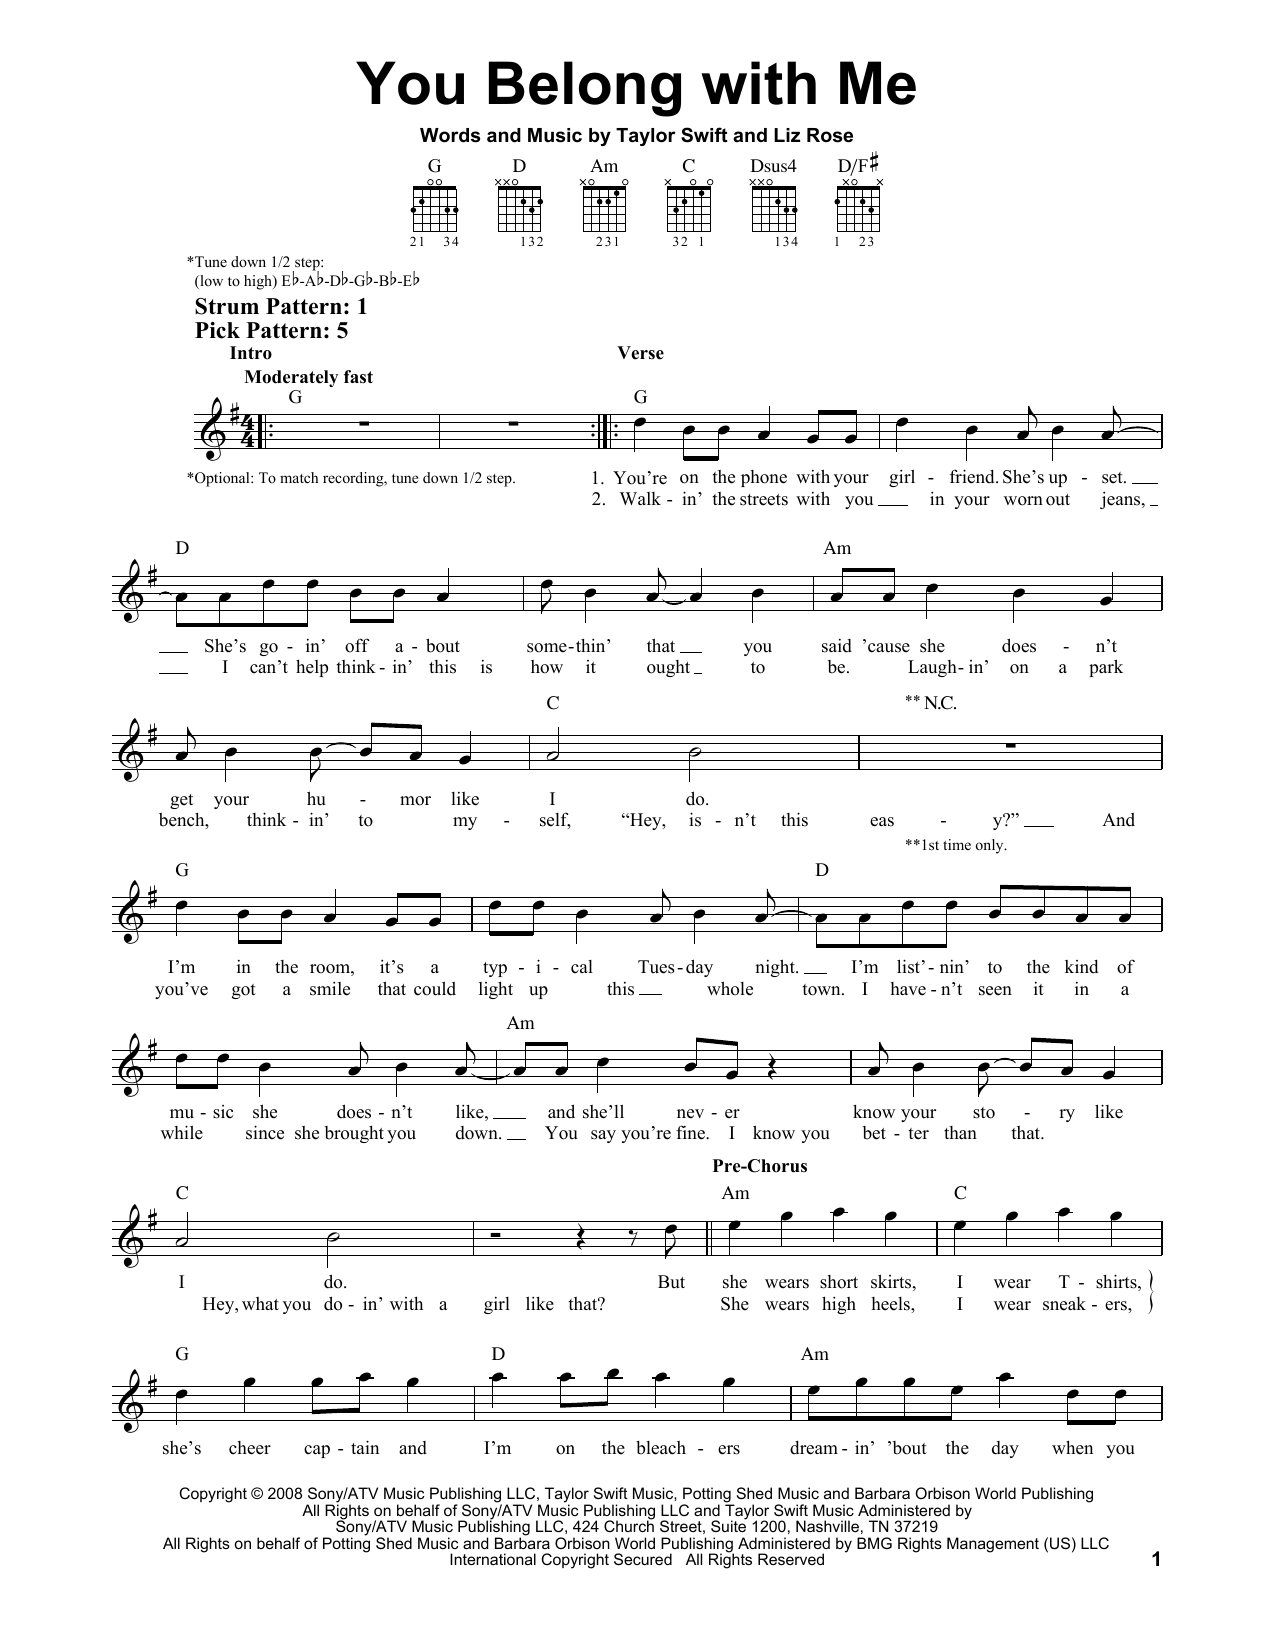 You Belong With Me Chords Sheet Music Digital Files To Print Licensed Liz Rose Digital Sheet